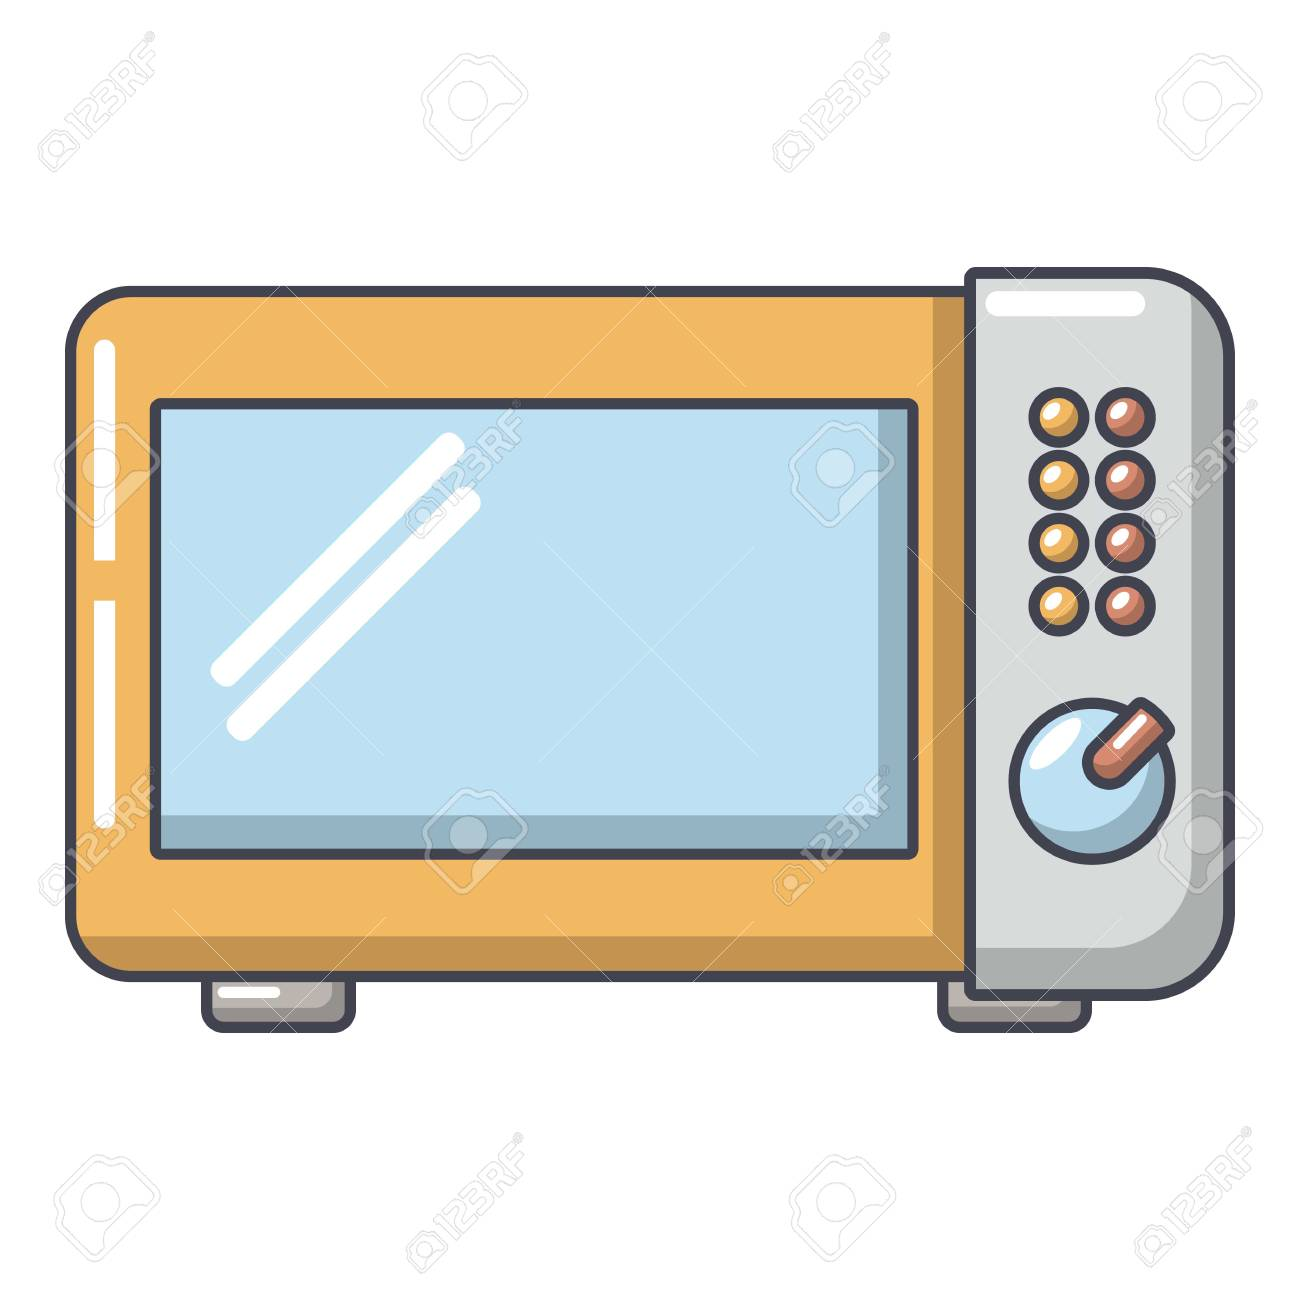 microwave oven icon cartoon illustration of microwave oven vector